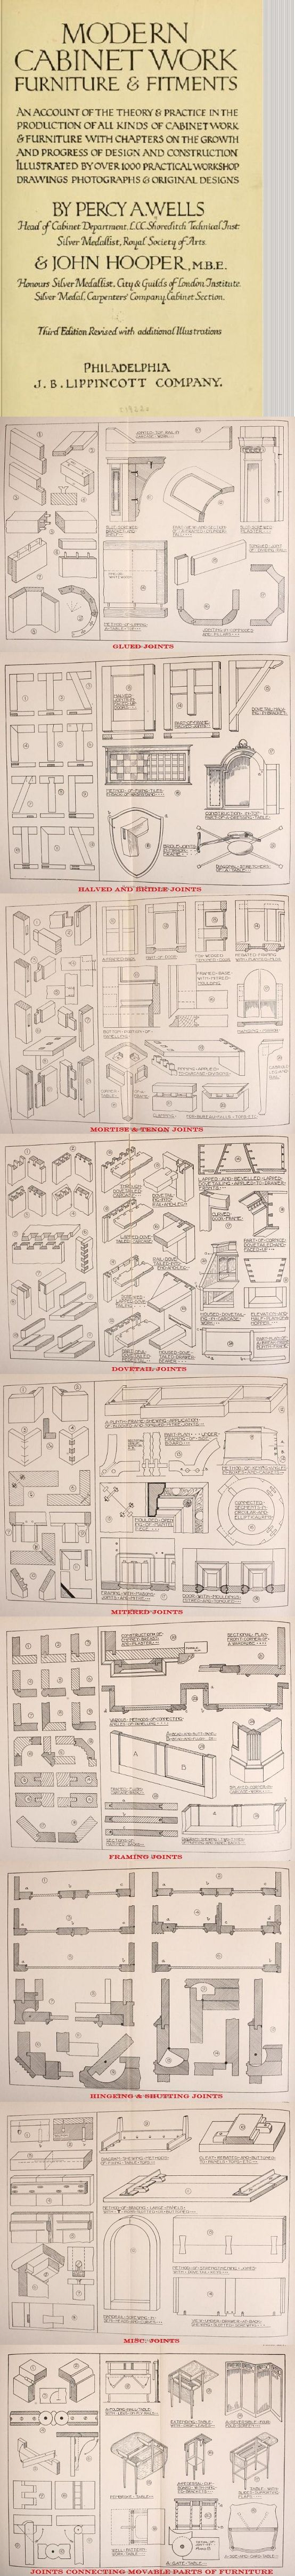 Learn how to #joints from the original #cabinetry masters in this book from 1922! Read Modern #Cabinet Work on the DIY Collaboratorium's #Woodshop Books page.